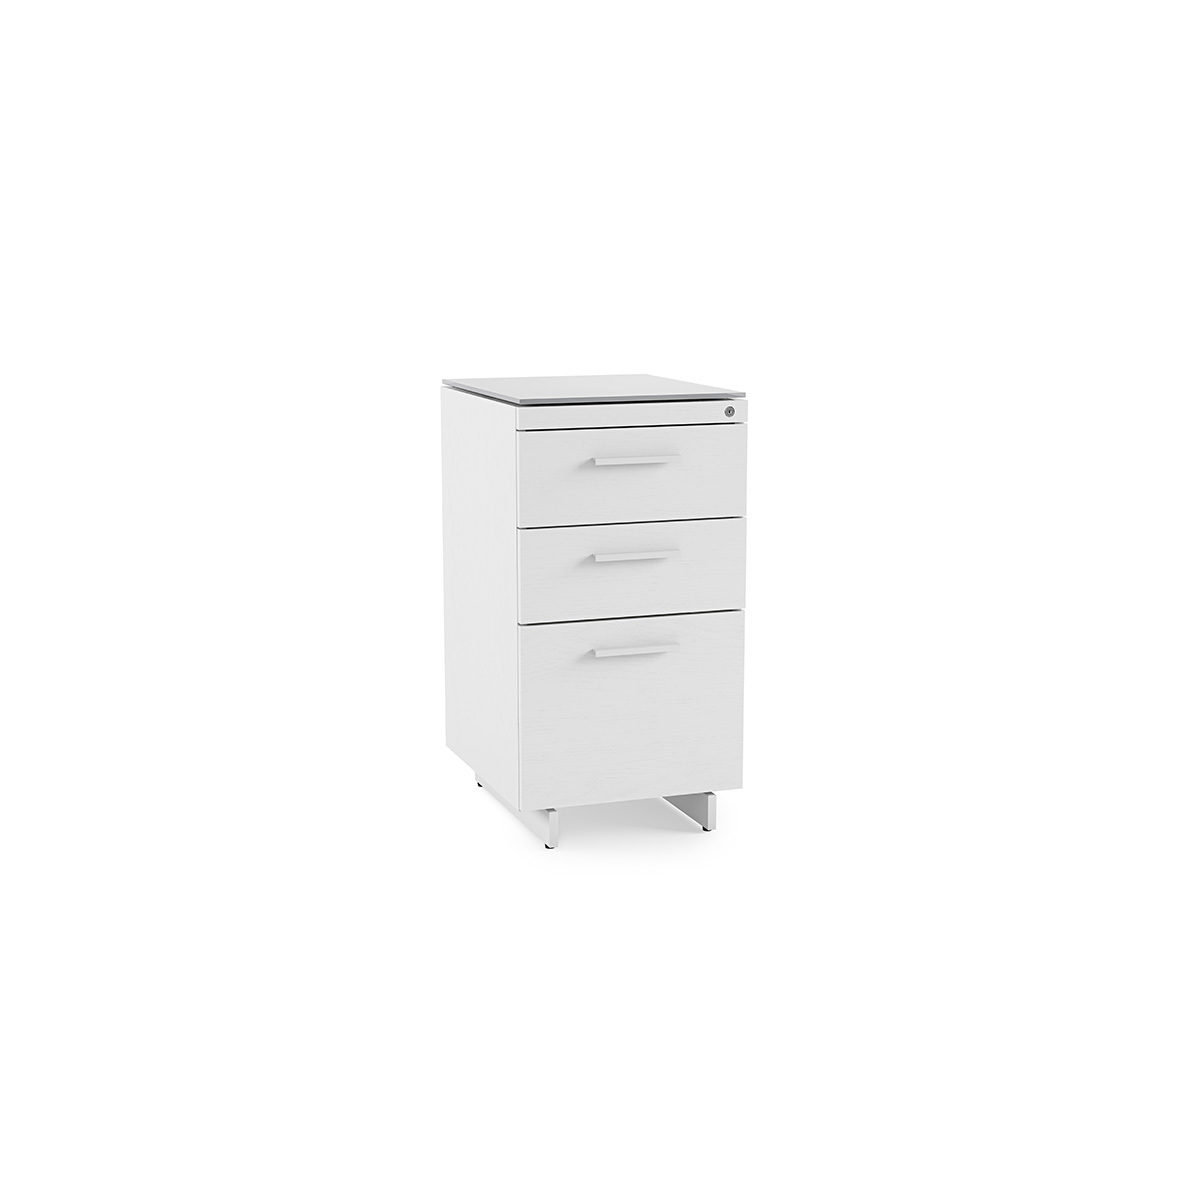 poppin cabinet file white dp legal filing letter metal office stow com amazon products drawer